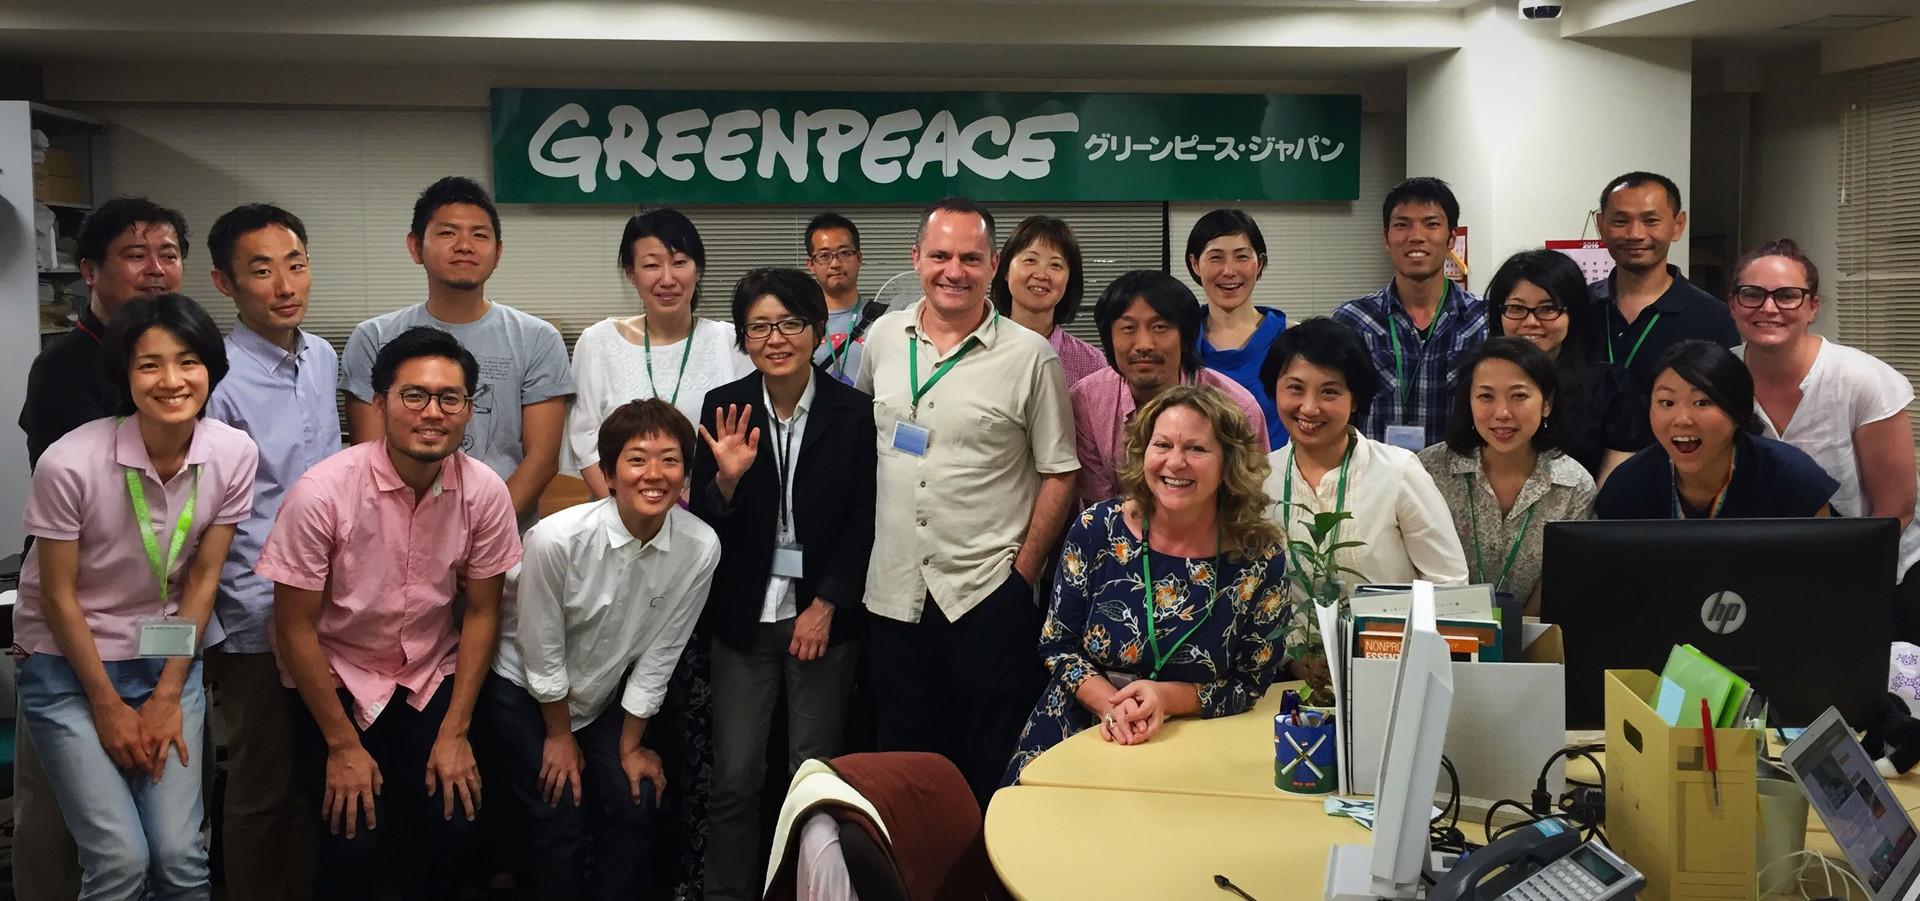 Working with Greenpeace Japan